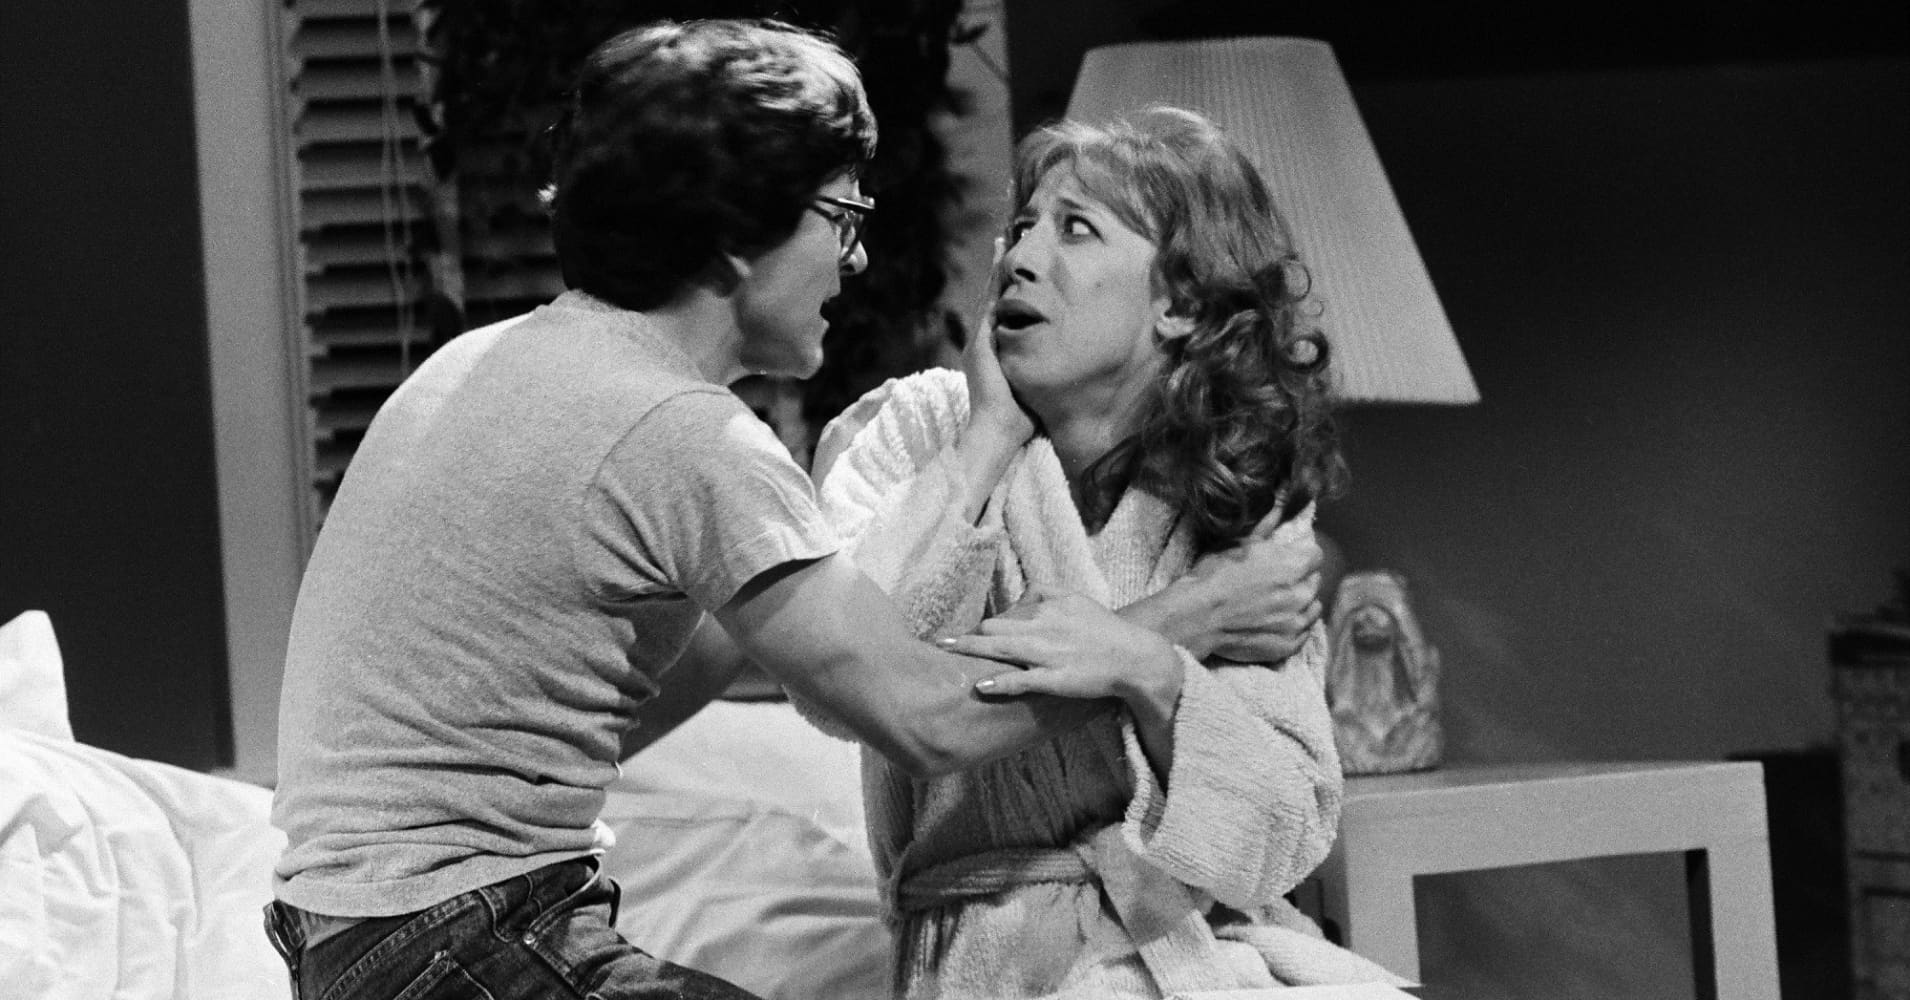 Tim Kazurinsky as Rod Schapps, Robin Duke as Ruth during the ''Strangers In the Night'' skit on 'Saturday Night Live.'